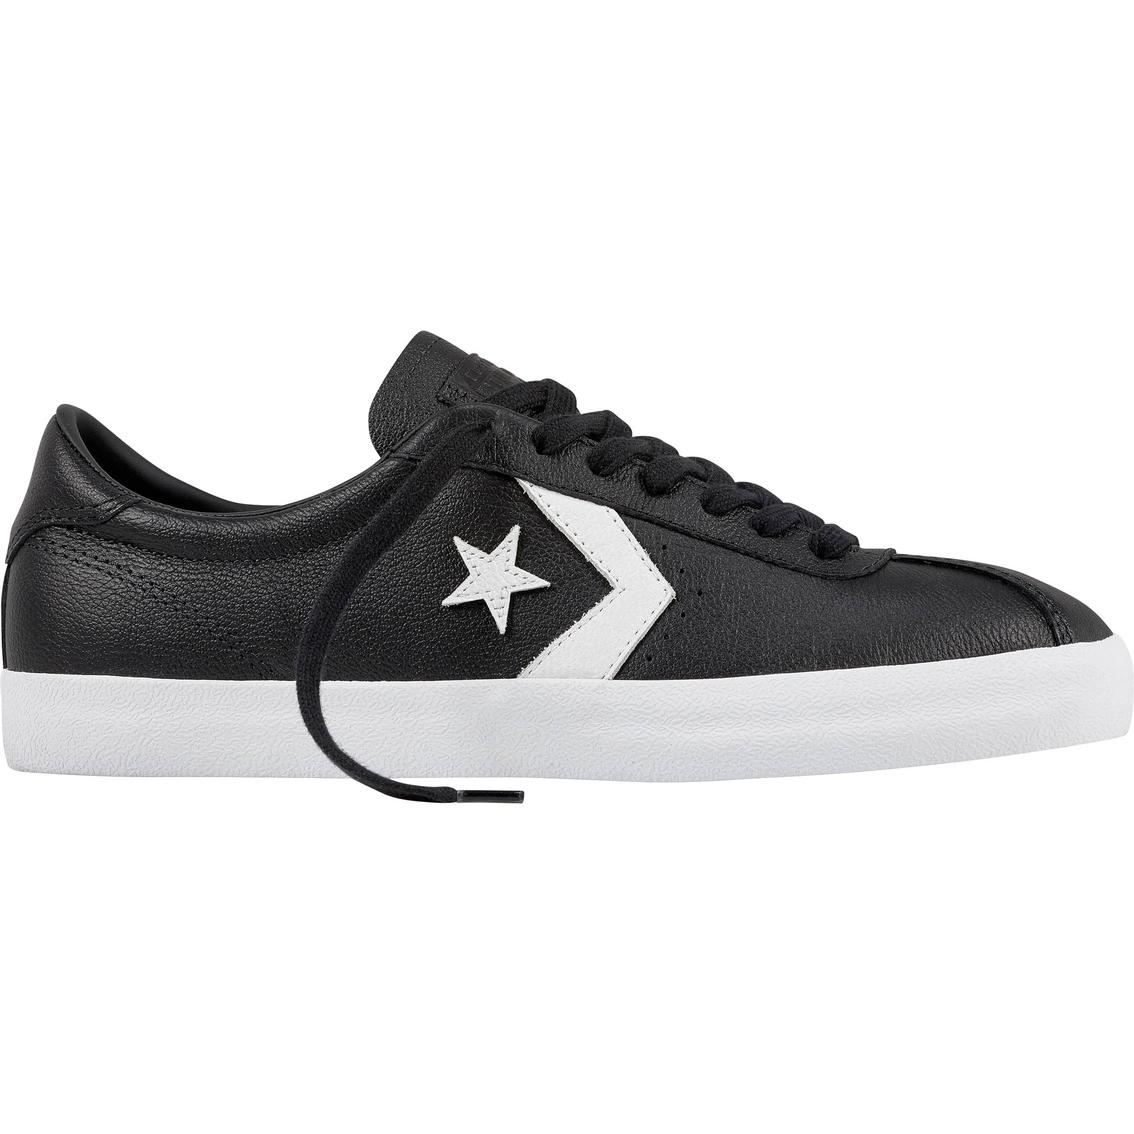 629d1d880dea Converse Men s Chuck Taylor All Star Breakpoint Ox Sneakers ...